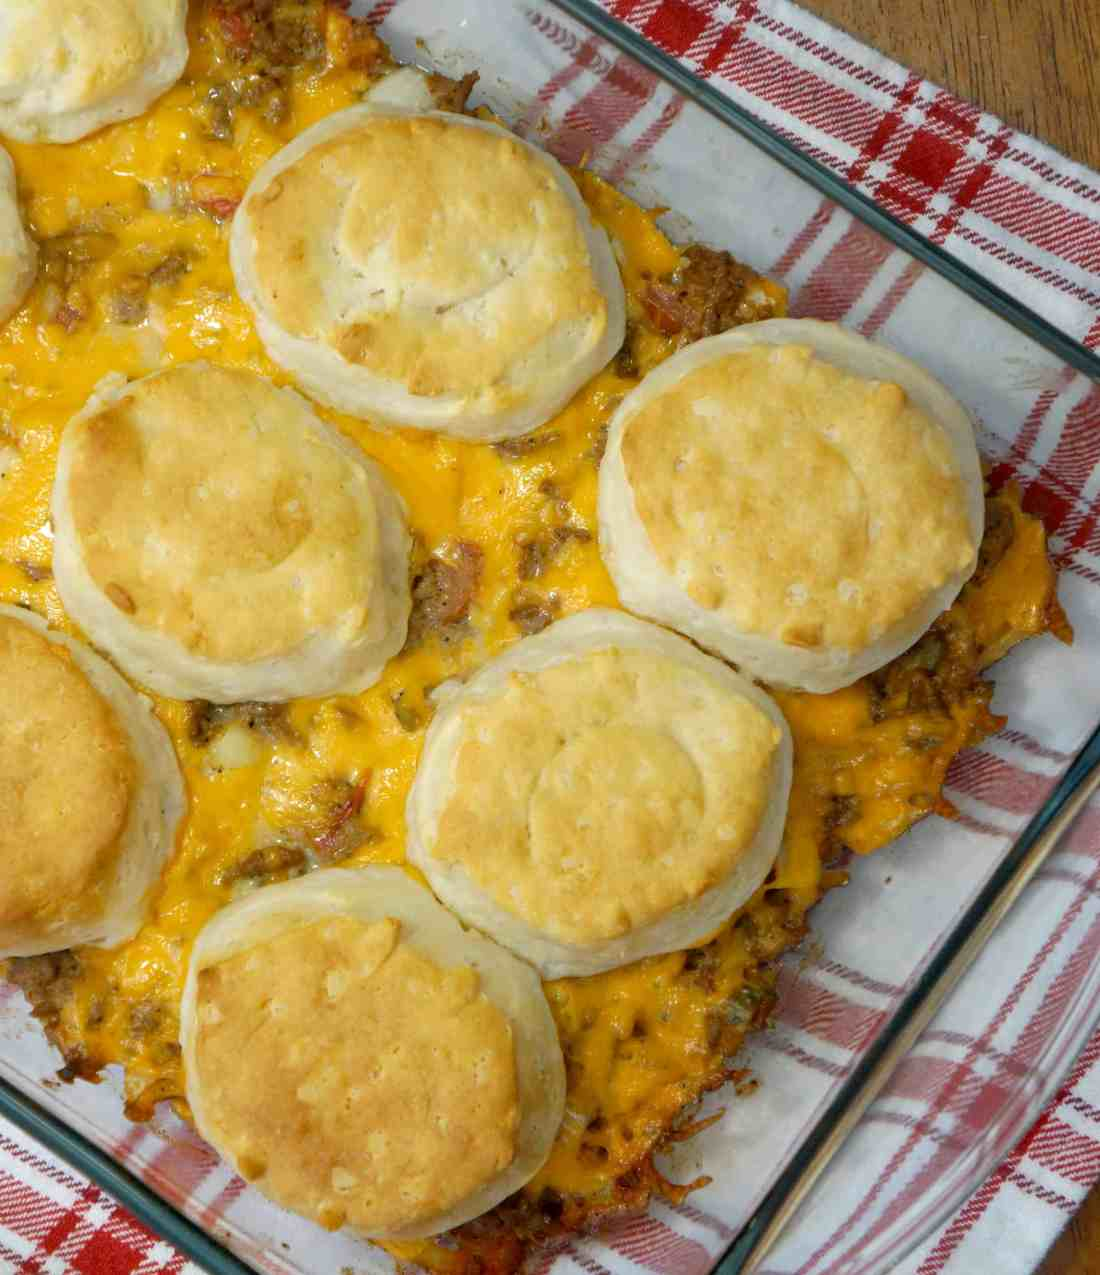 easy ground beef casserole loaded with cheese, onions, pickles, tomatoes, ketchup and mustard. Topped with Pillsbury biscuits.